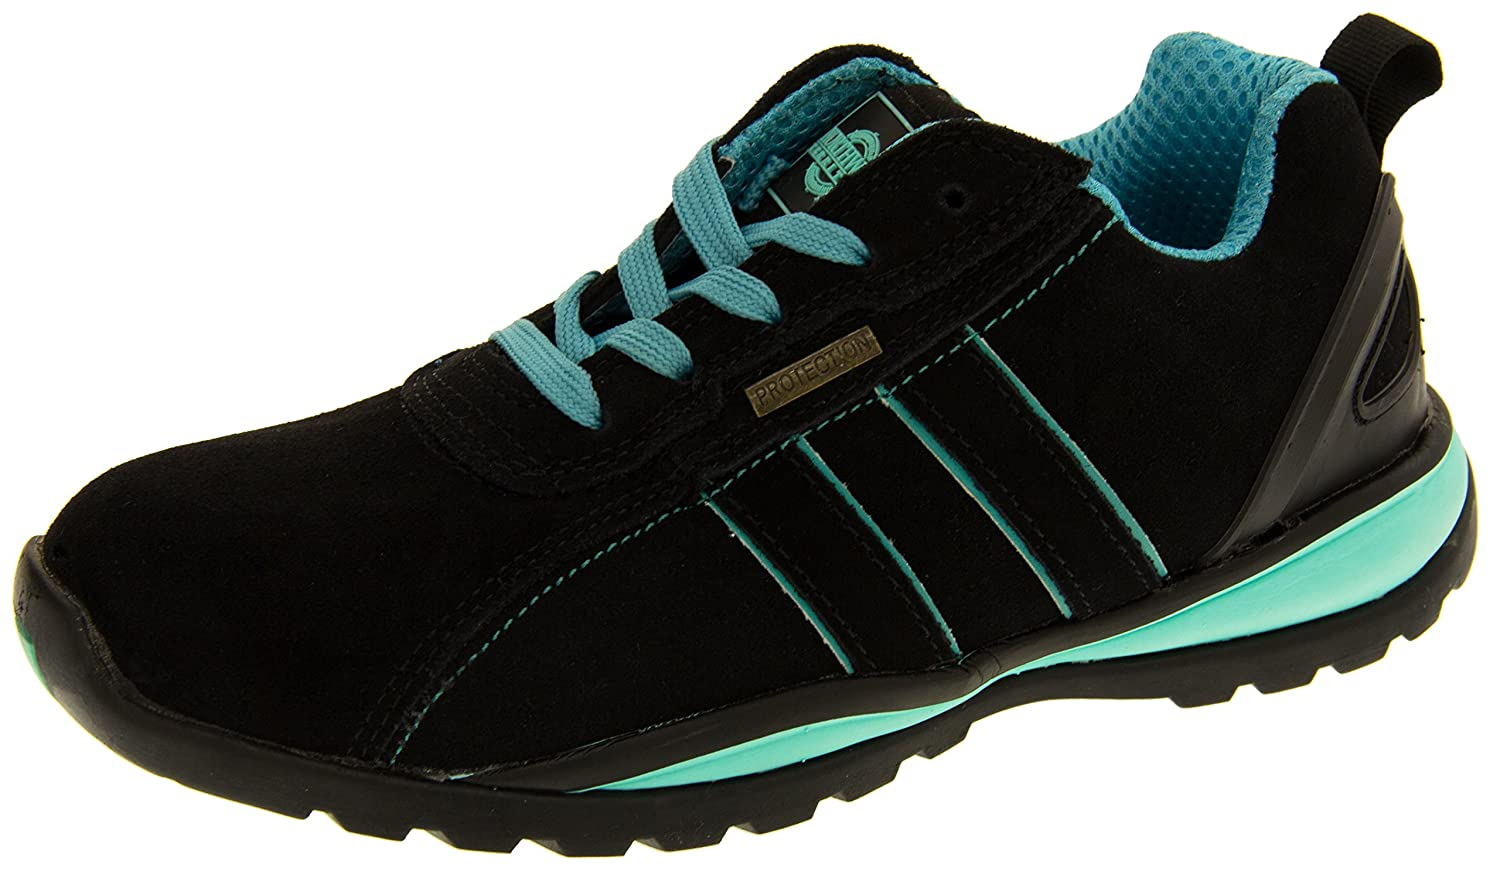 Northwest Black and Blue (Aqua Green Trim) 8 US 8 USBlack and Blue (Aqua Green Trim) B0195EKQMI